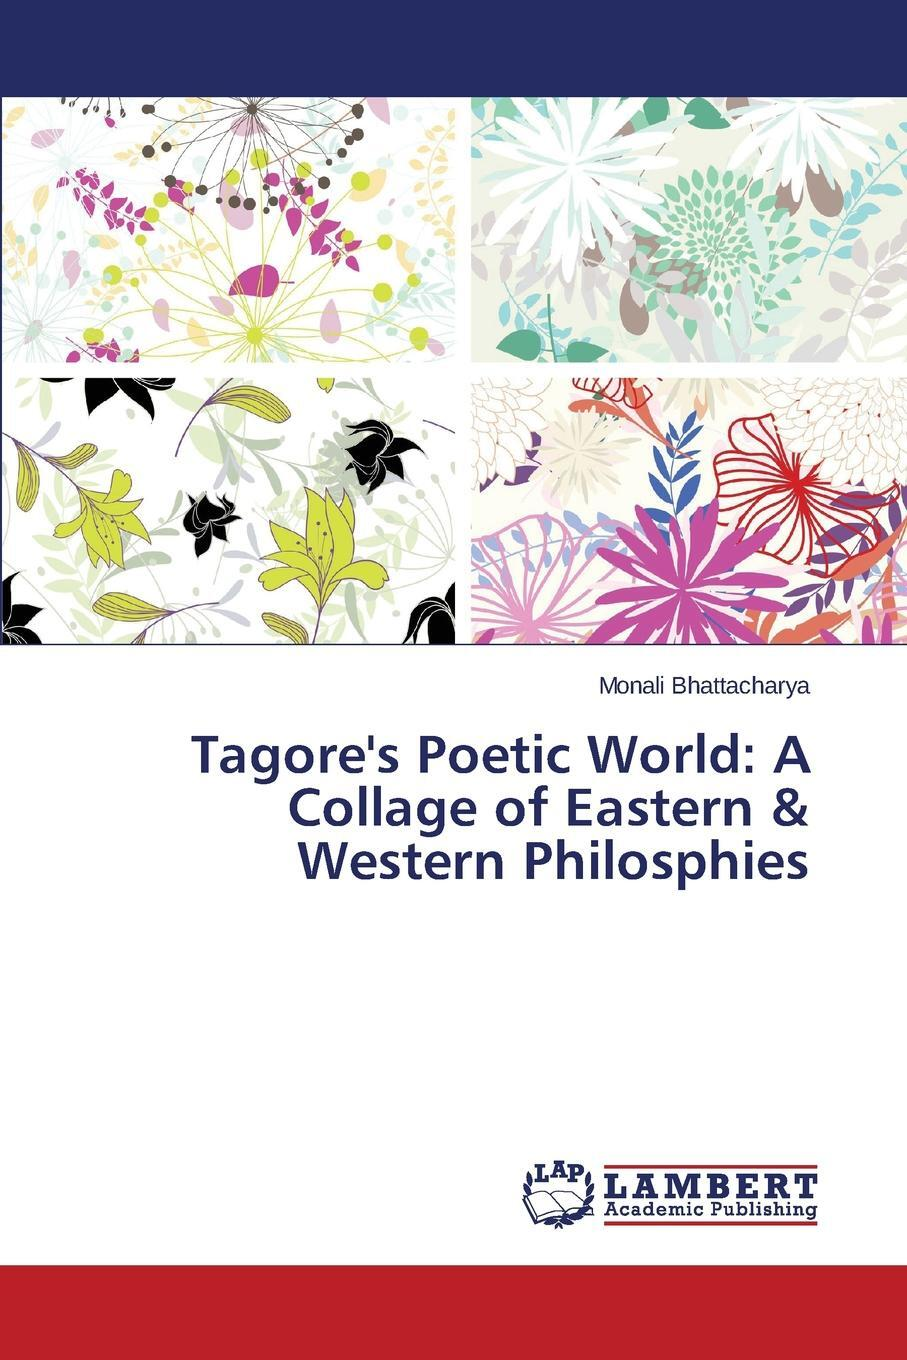 Tagore's Poetic World. A Collage of Eastern & Western Philosphies